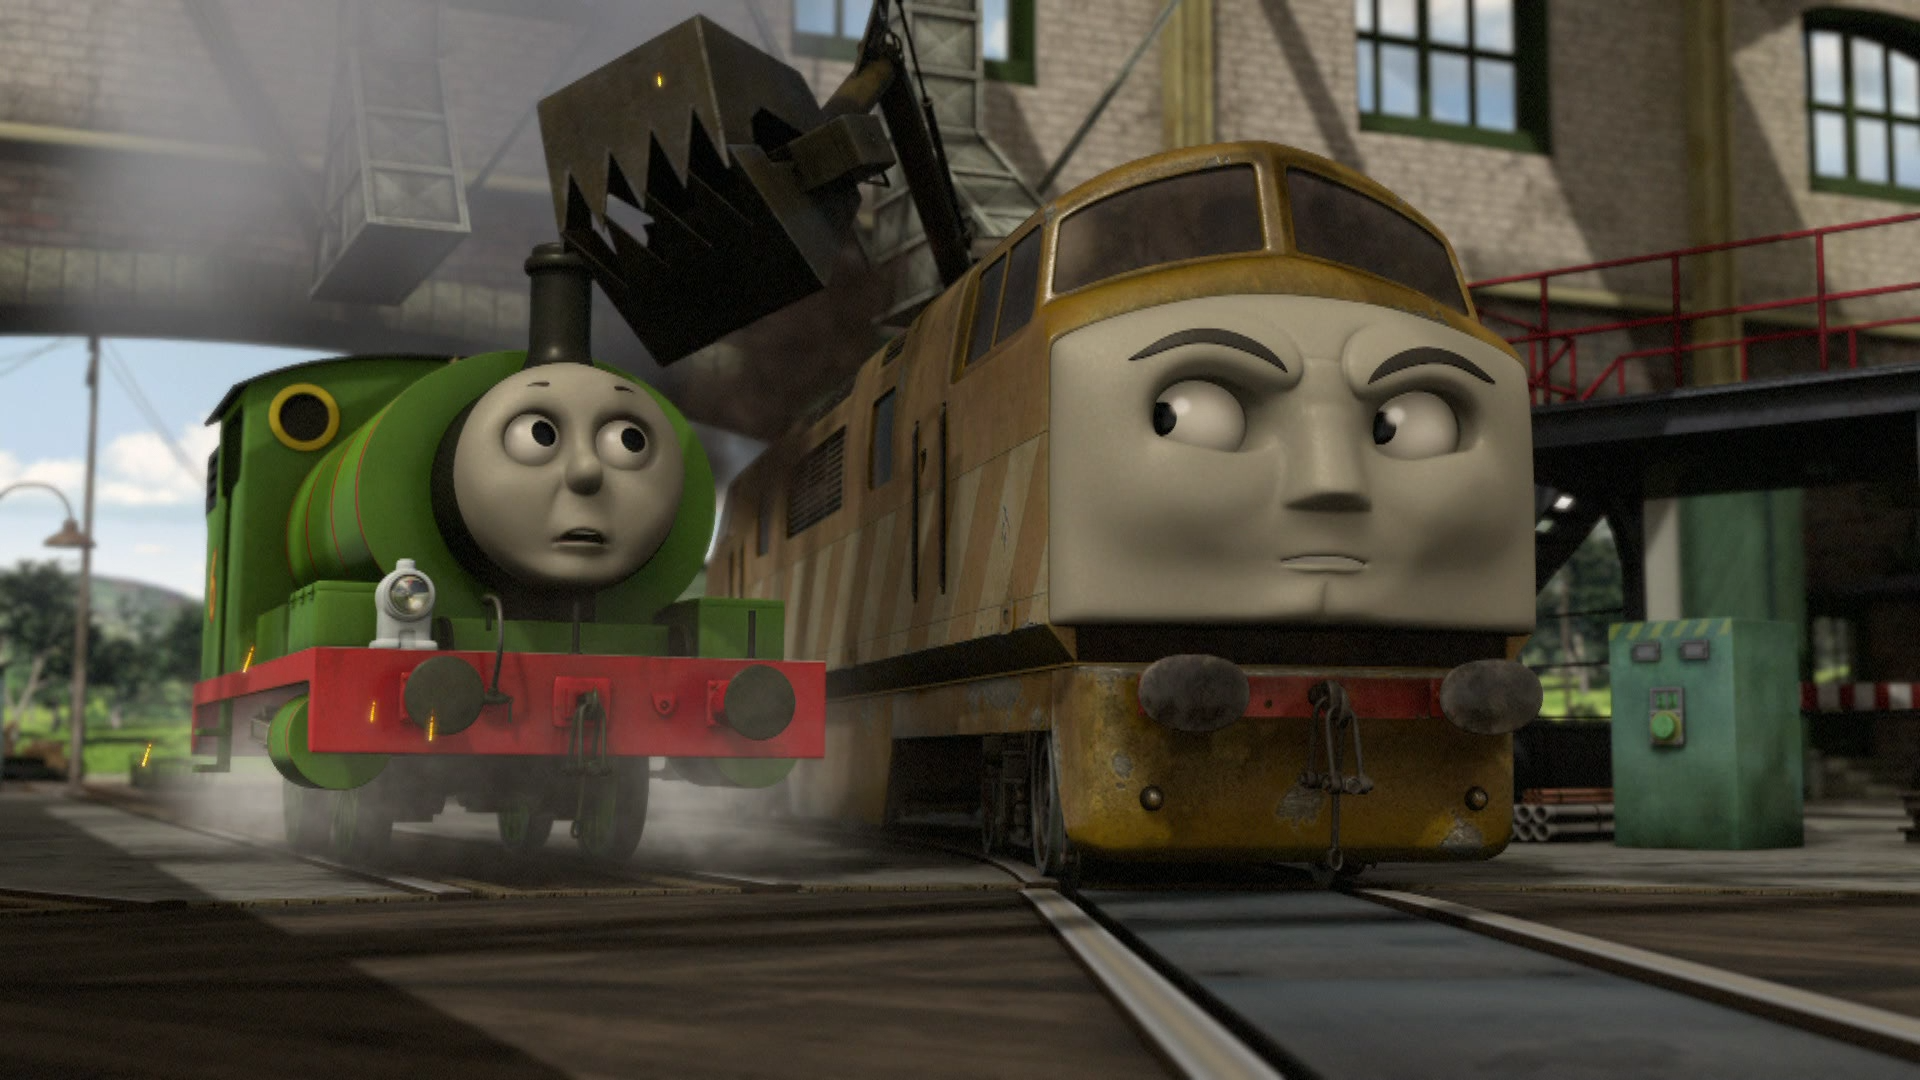 Day of the Diesels (song)